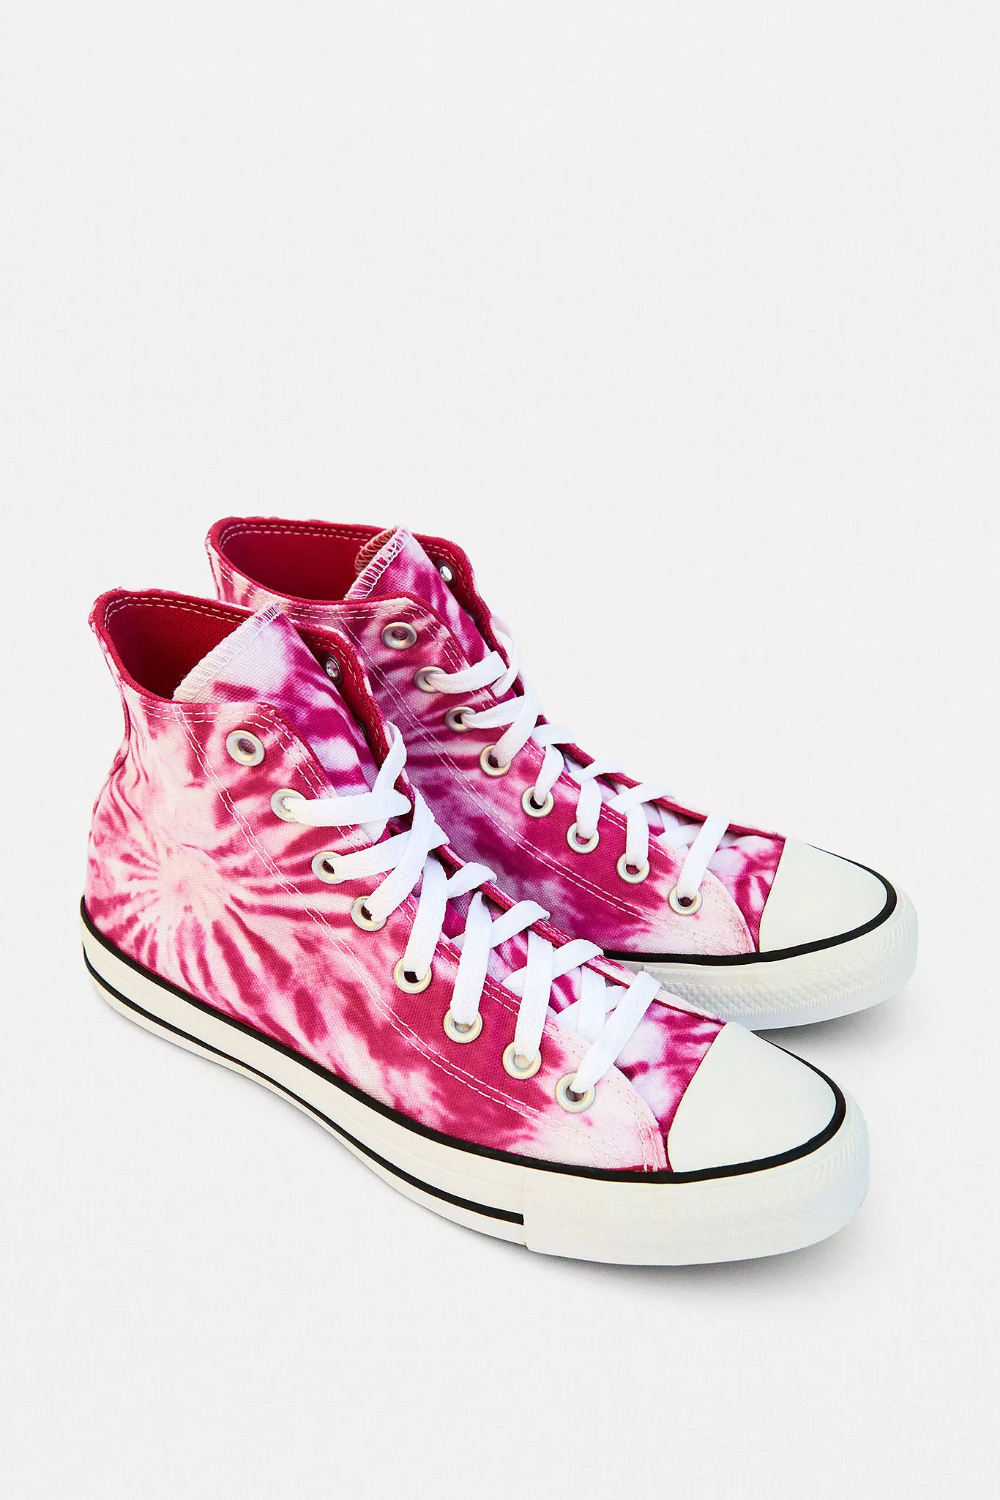 Converse Chuck Taylor All Star Pink Tie